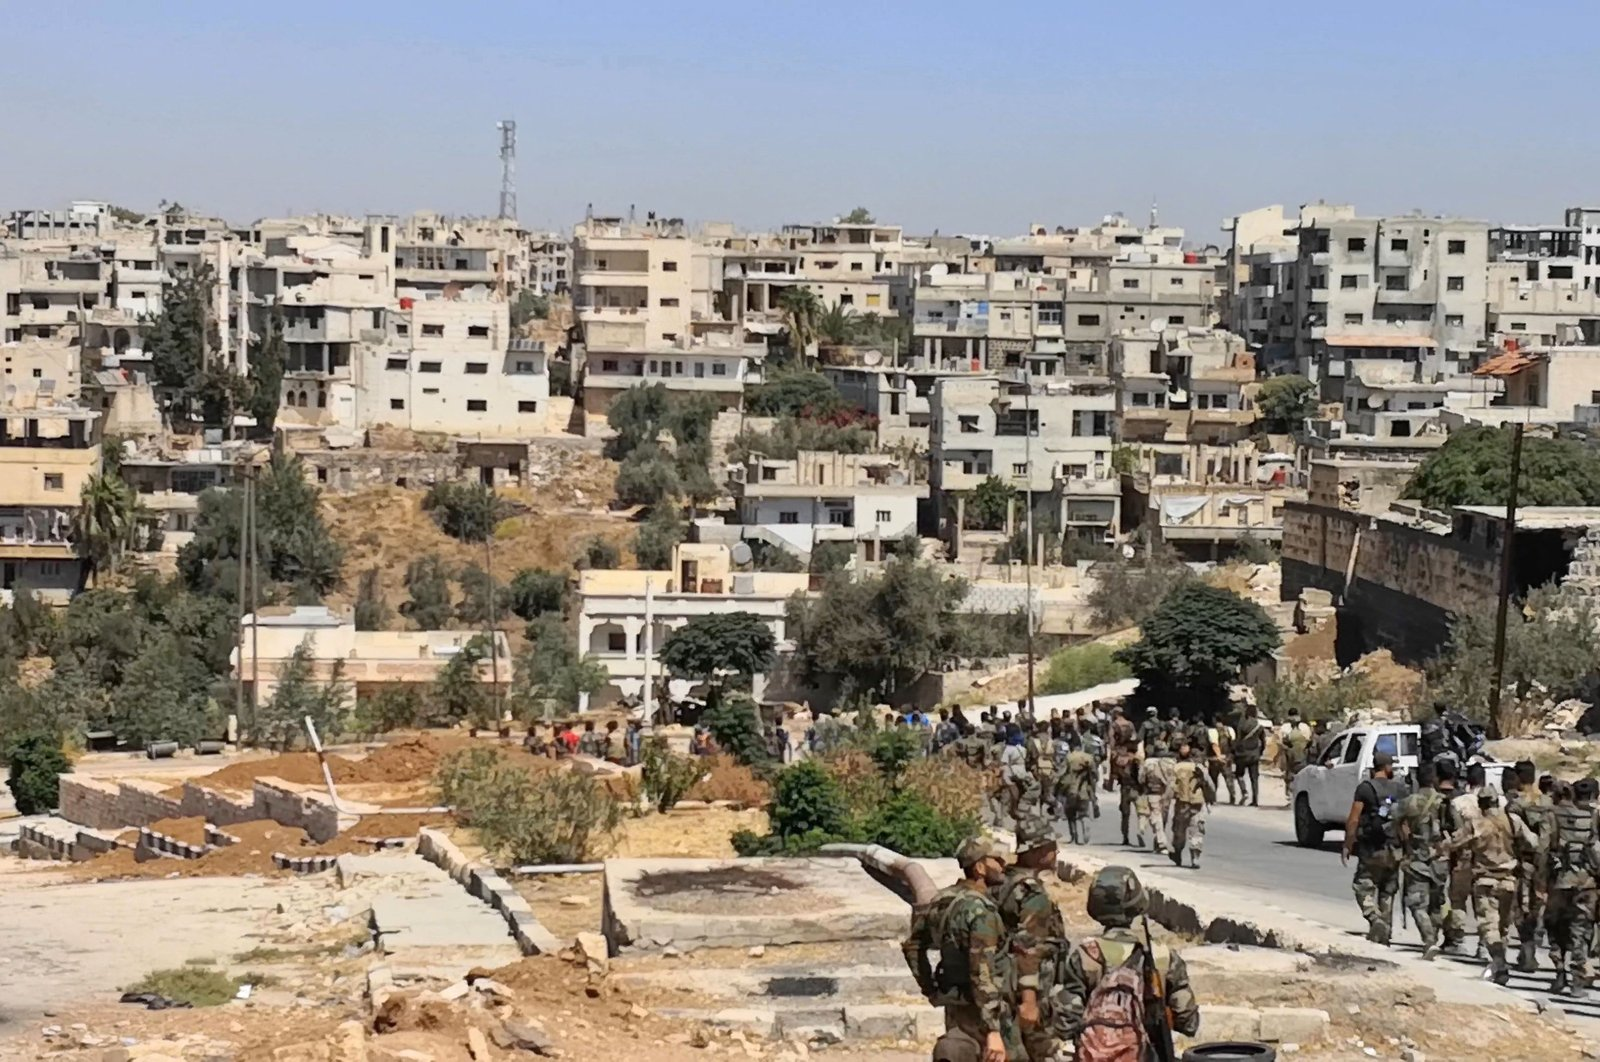 A handout picture released by the regime-linked Syrian Arab News Agency (SANA) on Sept. 8, 2021, shows the Assad regime army entering the opposition-held Daraa al-Balad district of Daraa city under a cease-fire deal brokered by the government's ally Russia. (Photo by SANA via AFP)